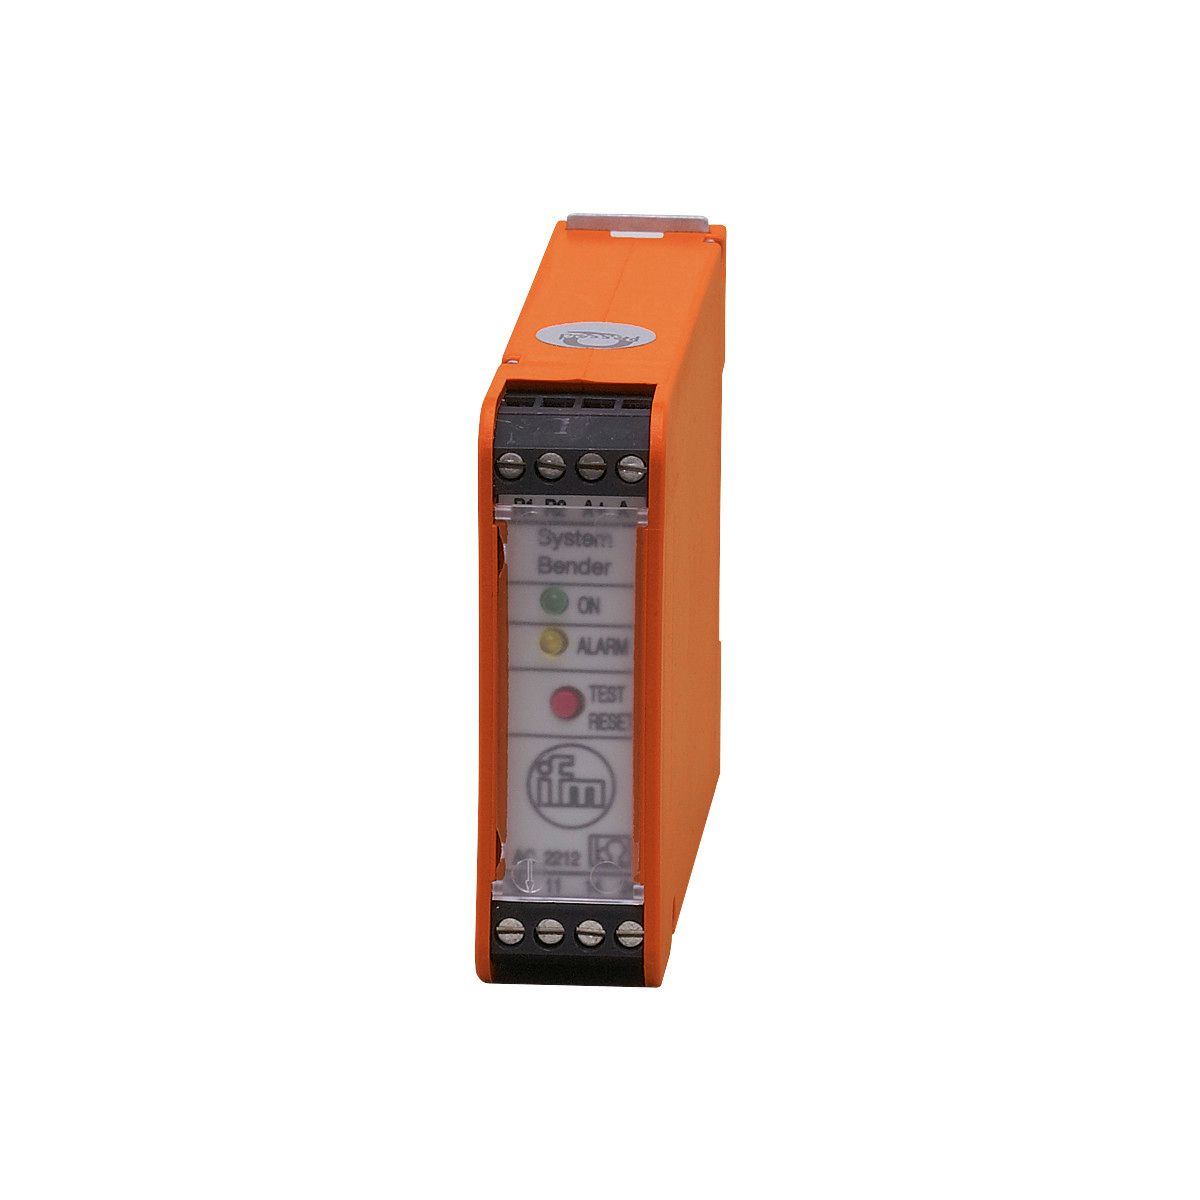 AC2212 IFM Electronic Insulation Monitoring Device